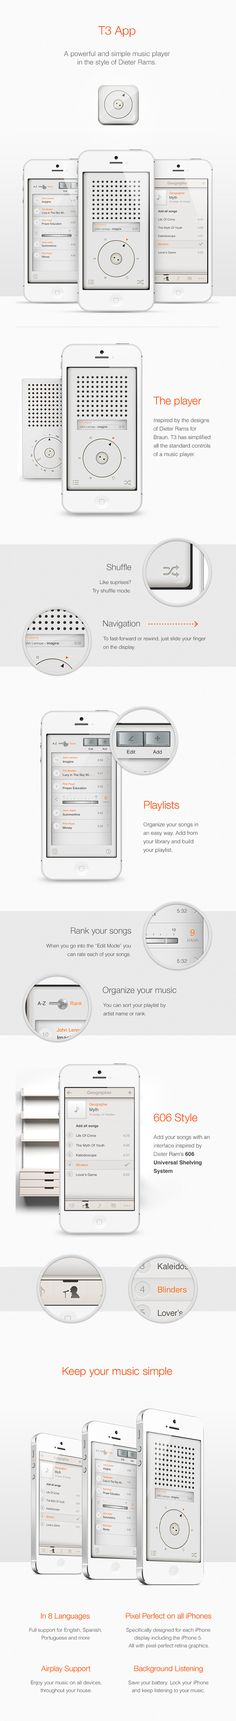 Dieter Rams Style Music App: T3 *** Influenced by the braun radio designs of dieter rams, the 'T3 music app' for iPhone integrates simplified controls and navigation features to minimize clutter and chaos in the device's song library. the browsing interface uses styling from the 606 universal shelving system - where playlists can be organized alphabetically or by manual ranking - allowing users to sort and customize music based on preference.